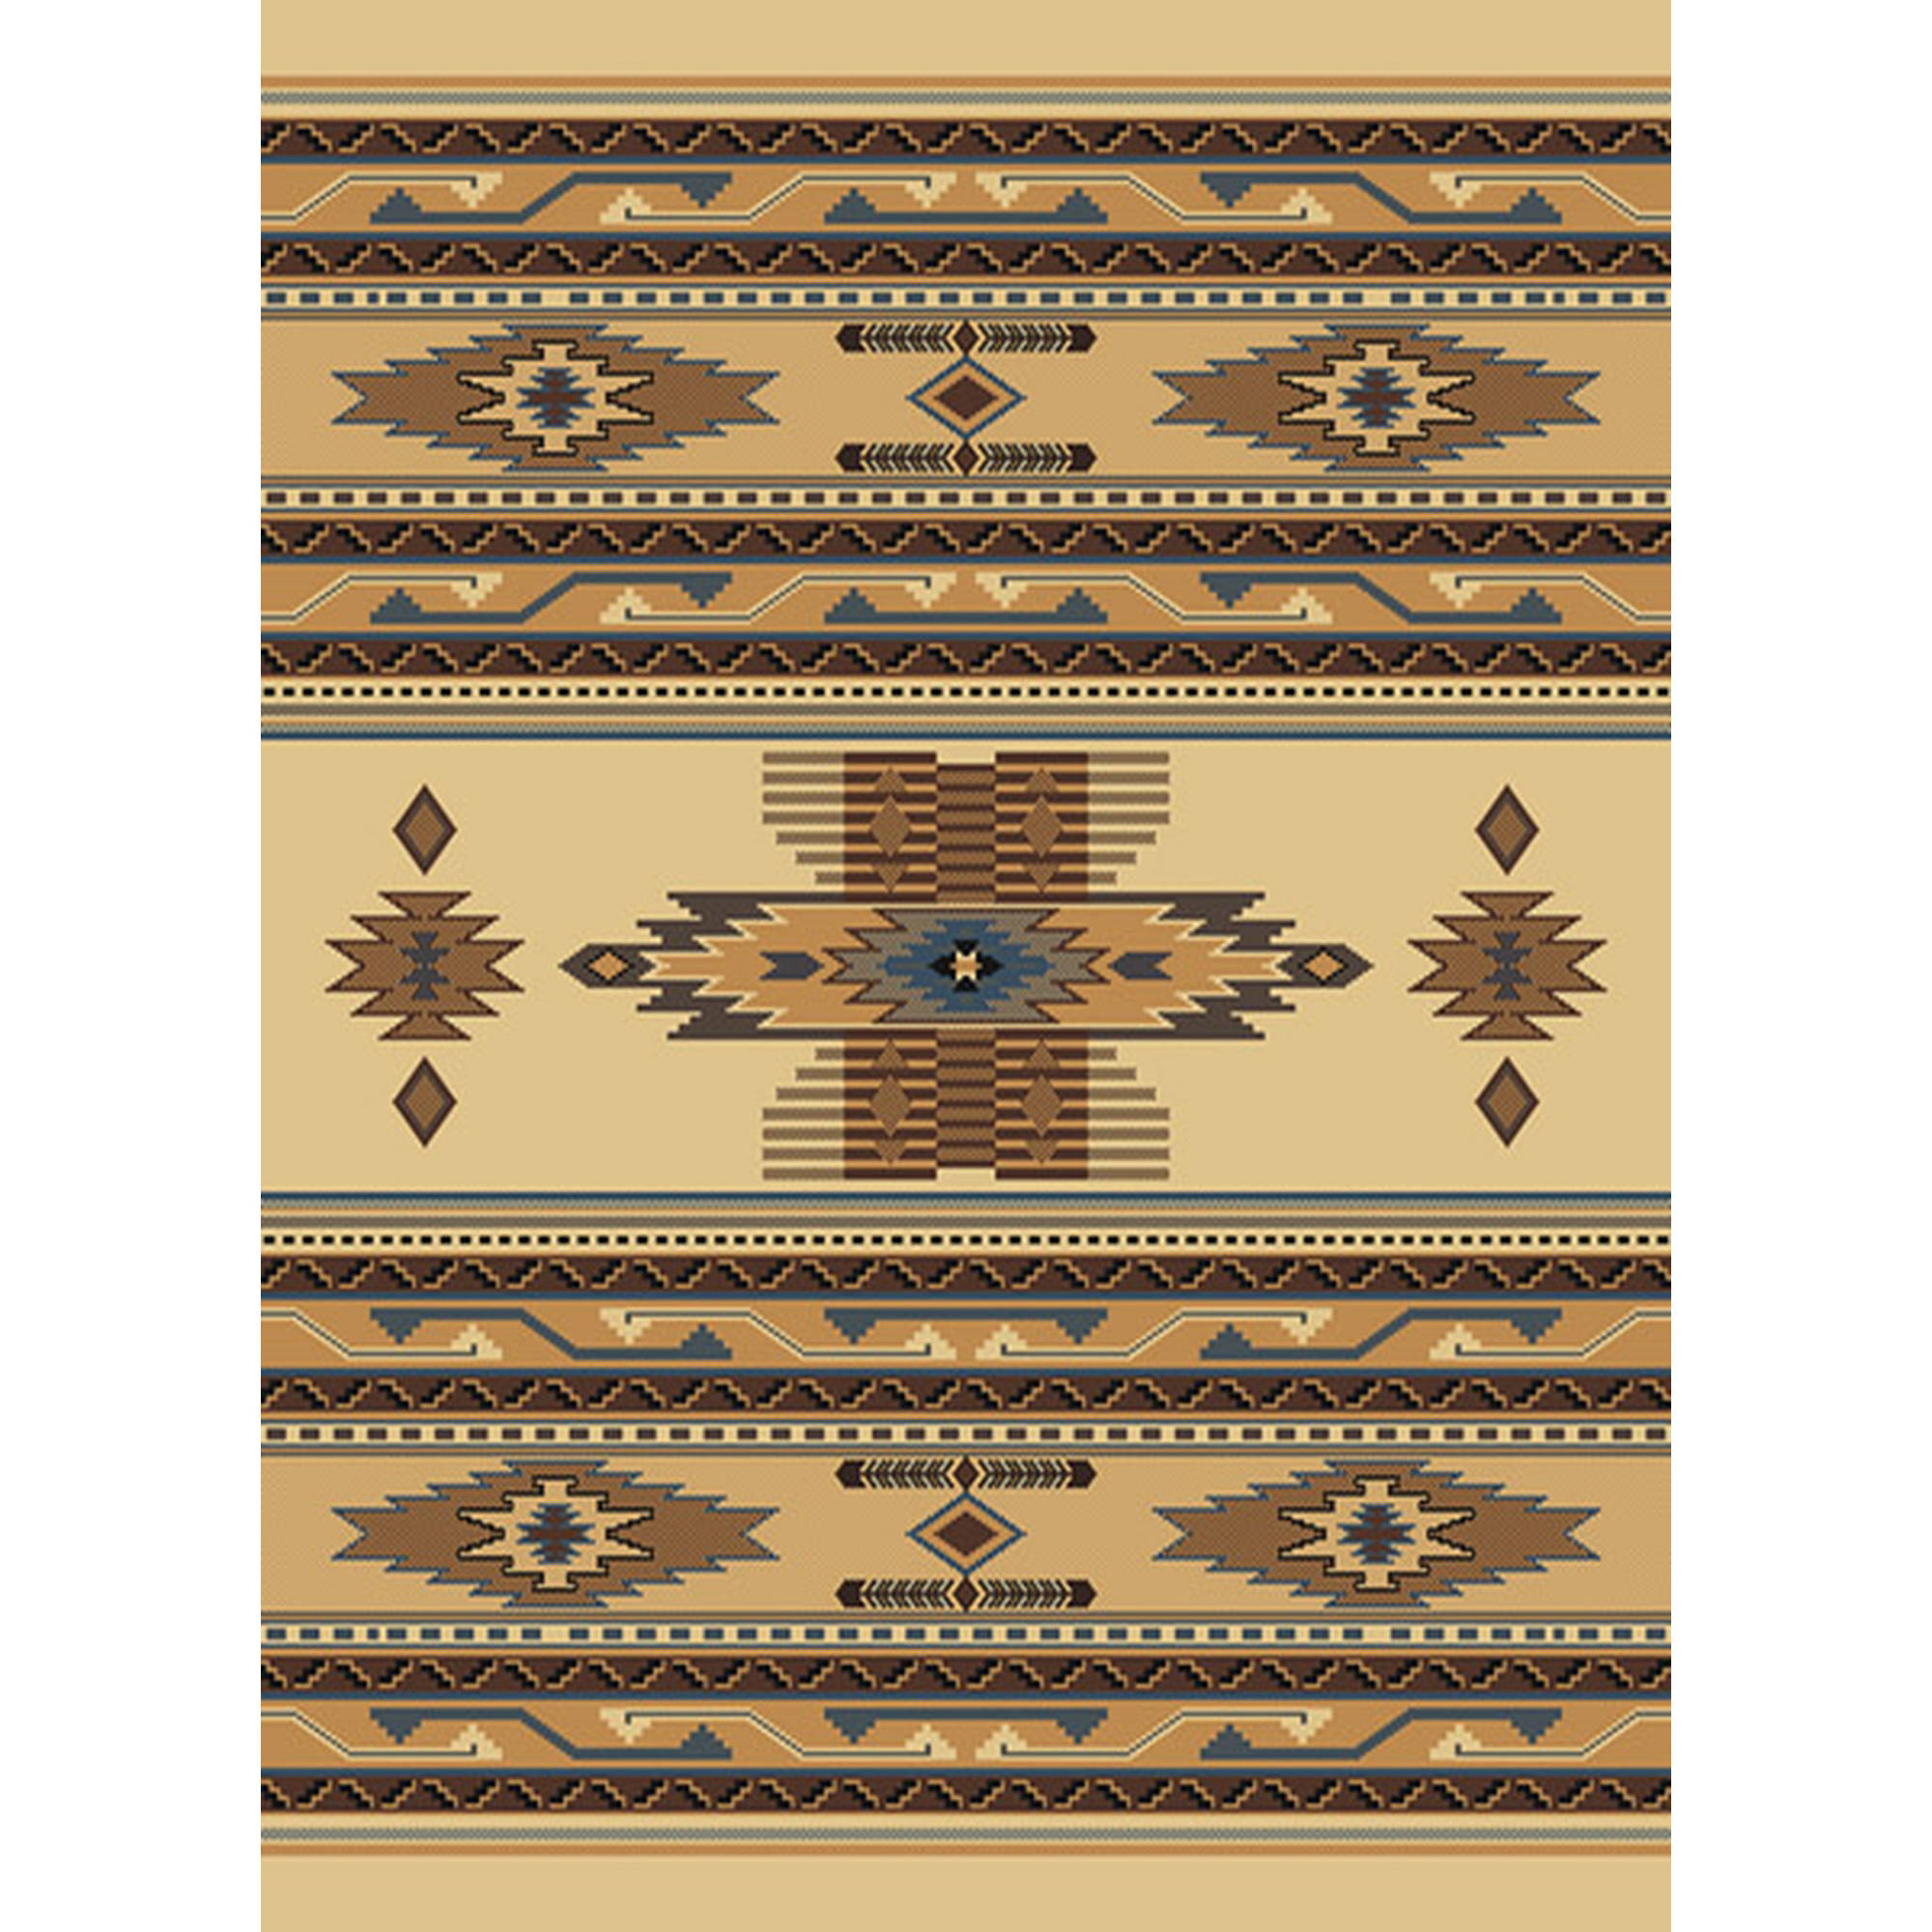 United Weavers BrunswickTamara Woven Olefin Scatter Rug